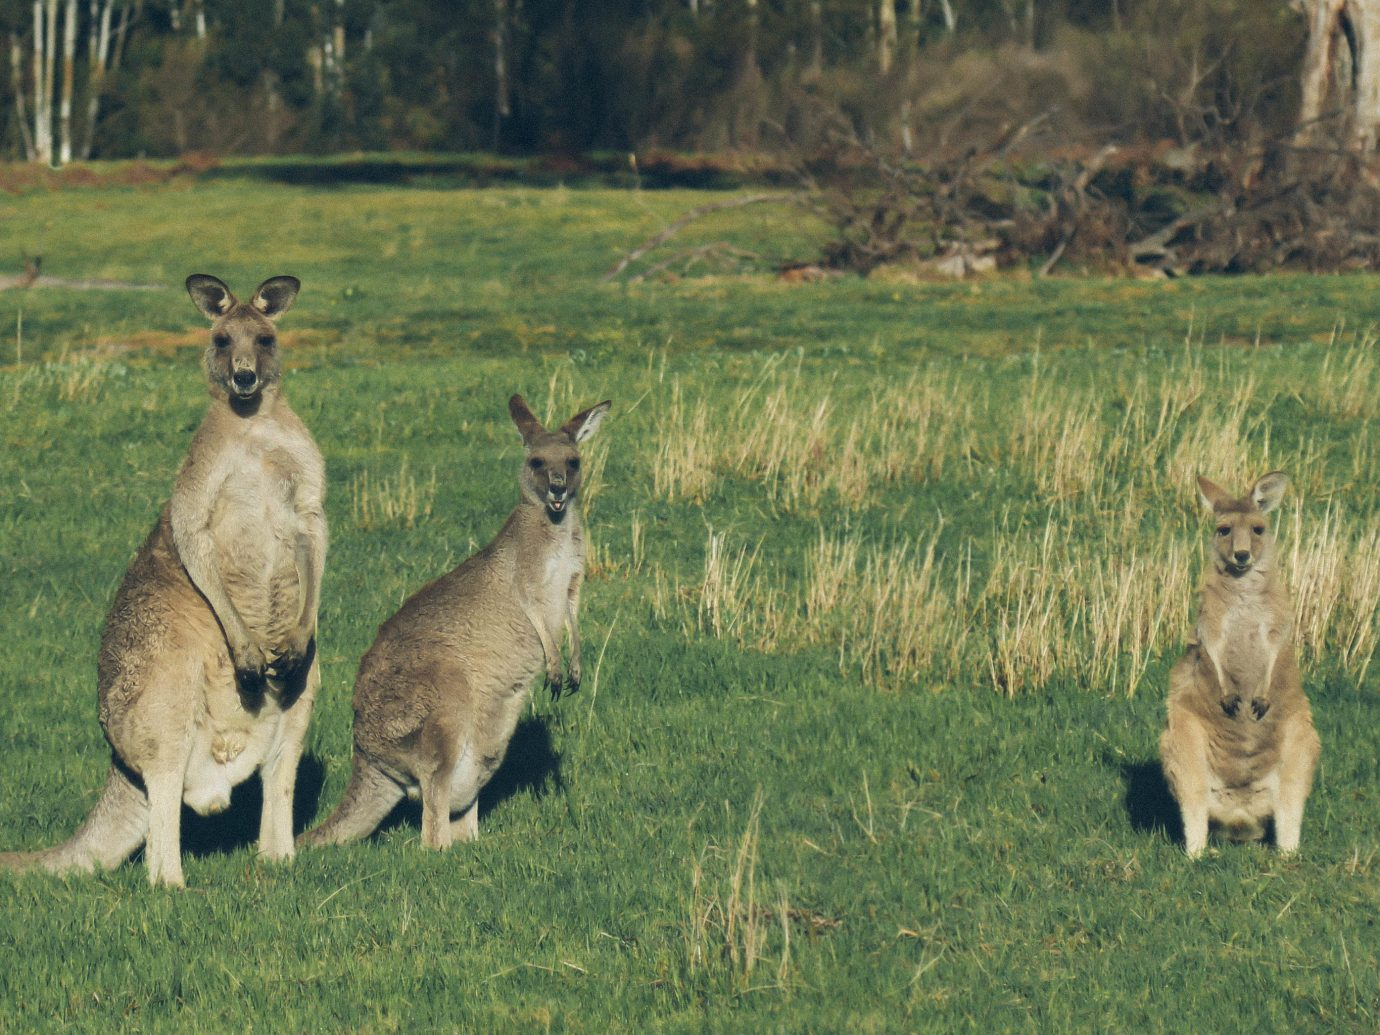 Trip Ideas grass animal outdoor field kangaroo mammal Wildlife fauna marsupial macropodidae grassland prairie white tailed deer savanna grassy